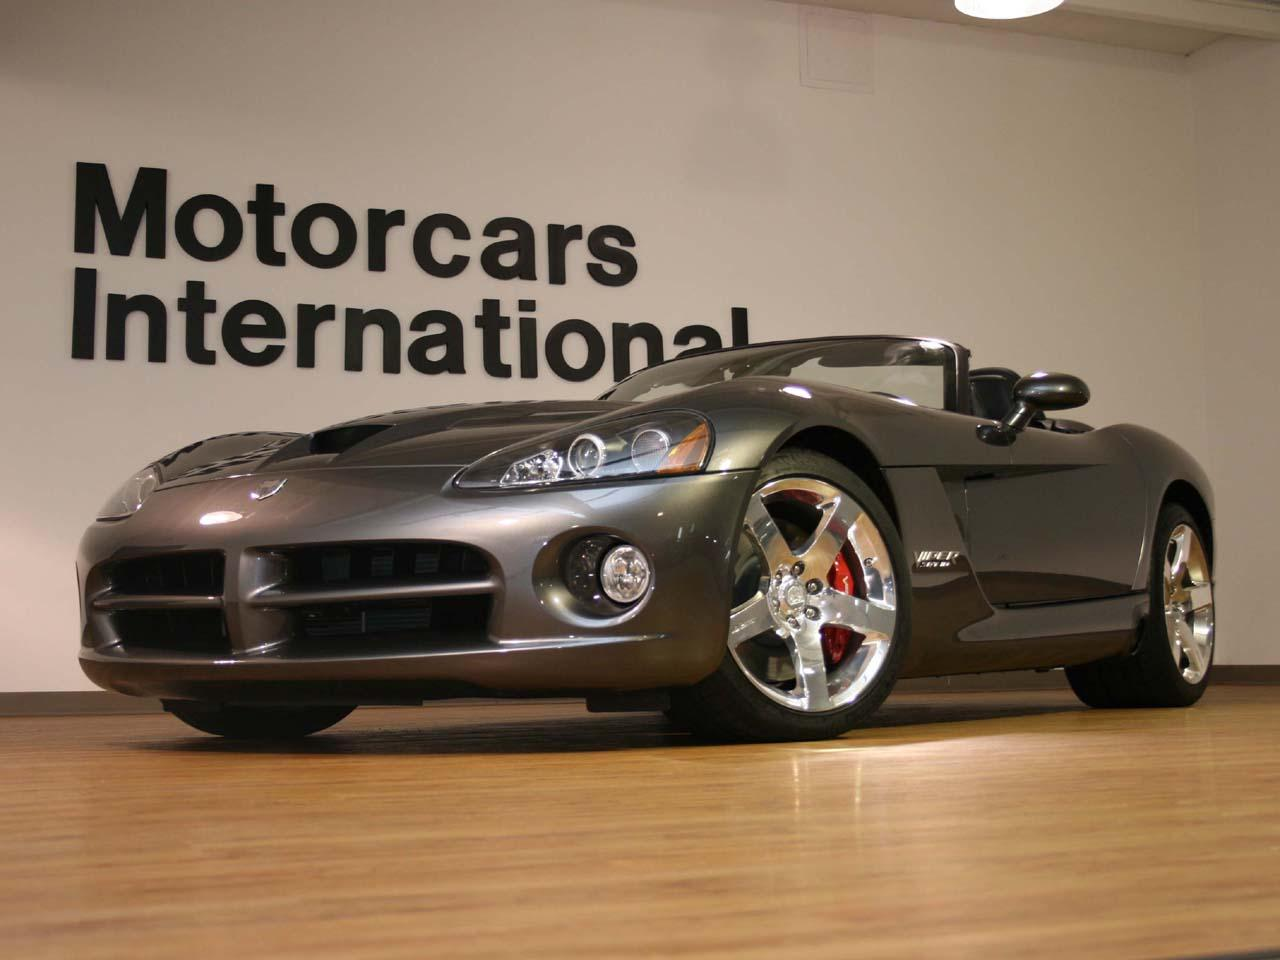 2013 Vipers For Sale.html   Autos Post